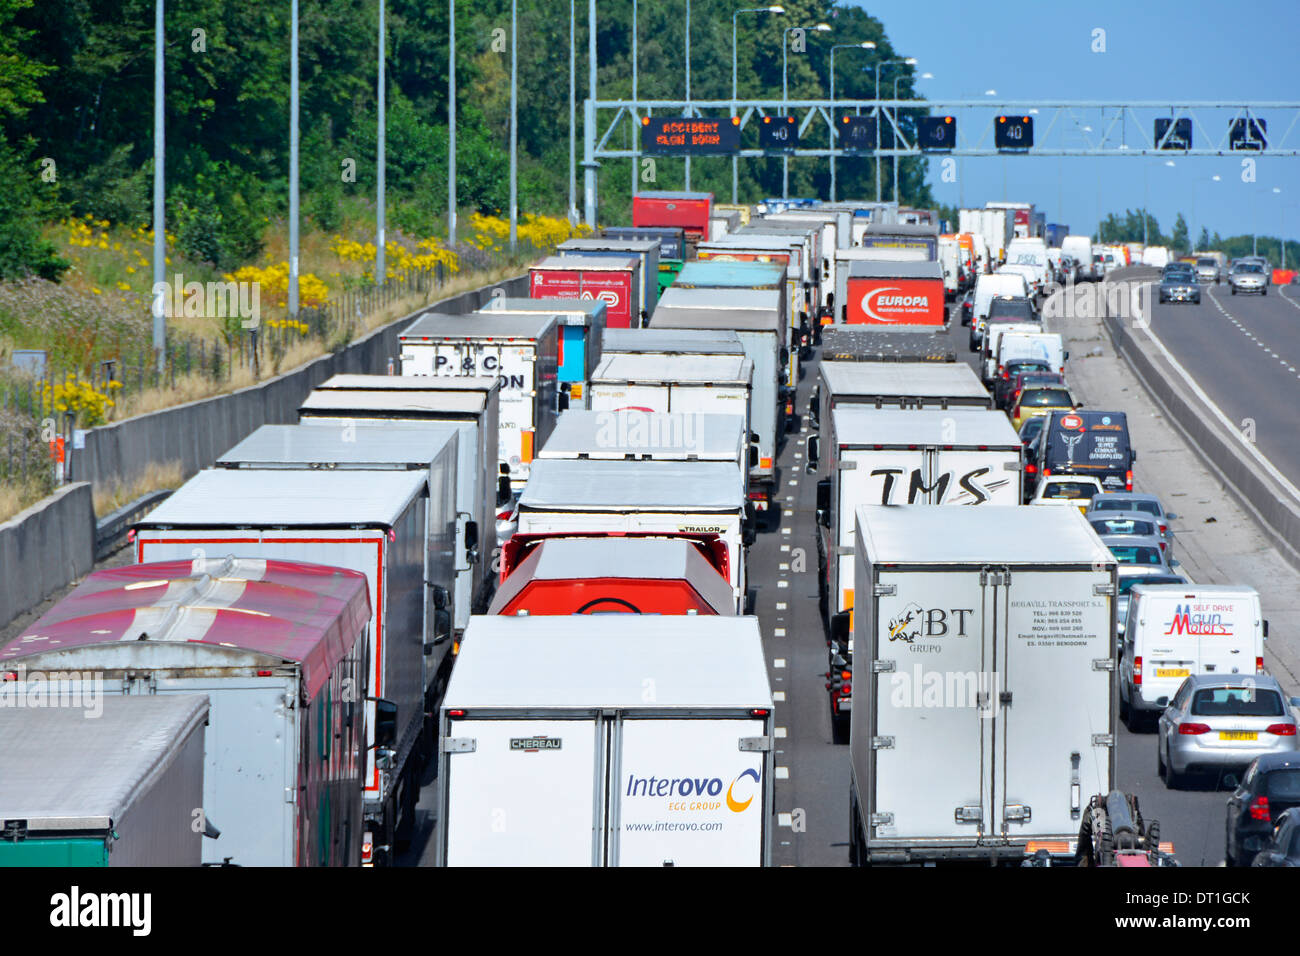 Four lane M25 motorway and gridlocked (mainly) trucks with articulated trailers stuck in queue because of an accident - Stock Image